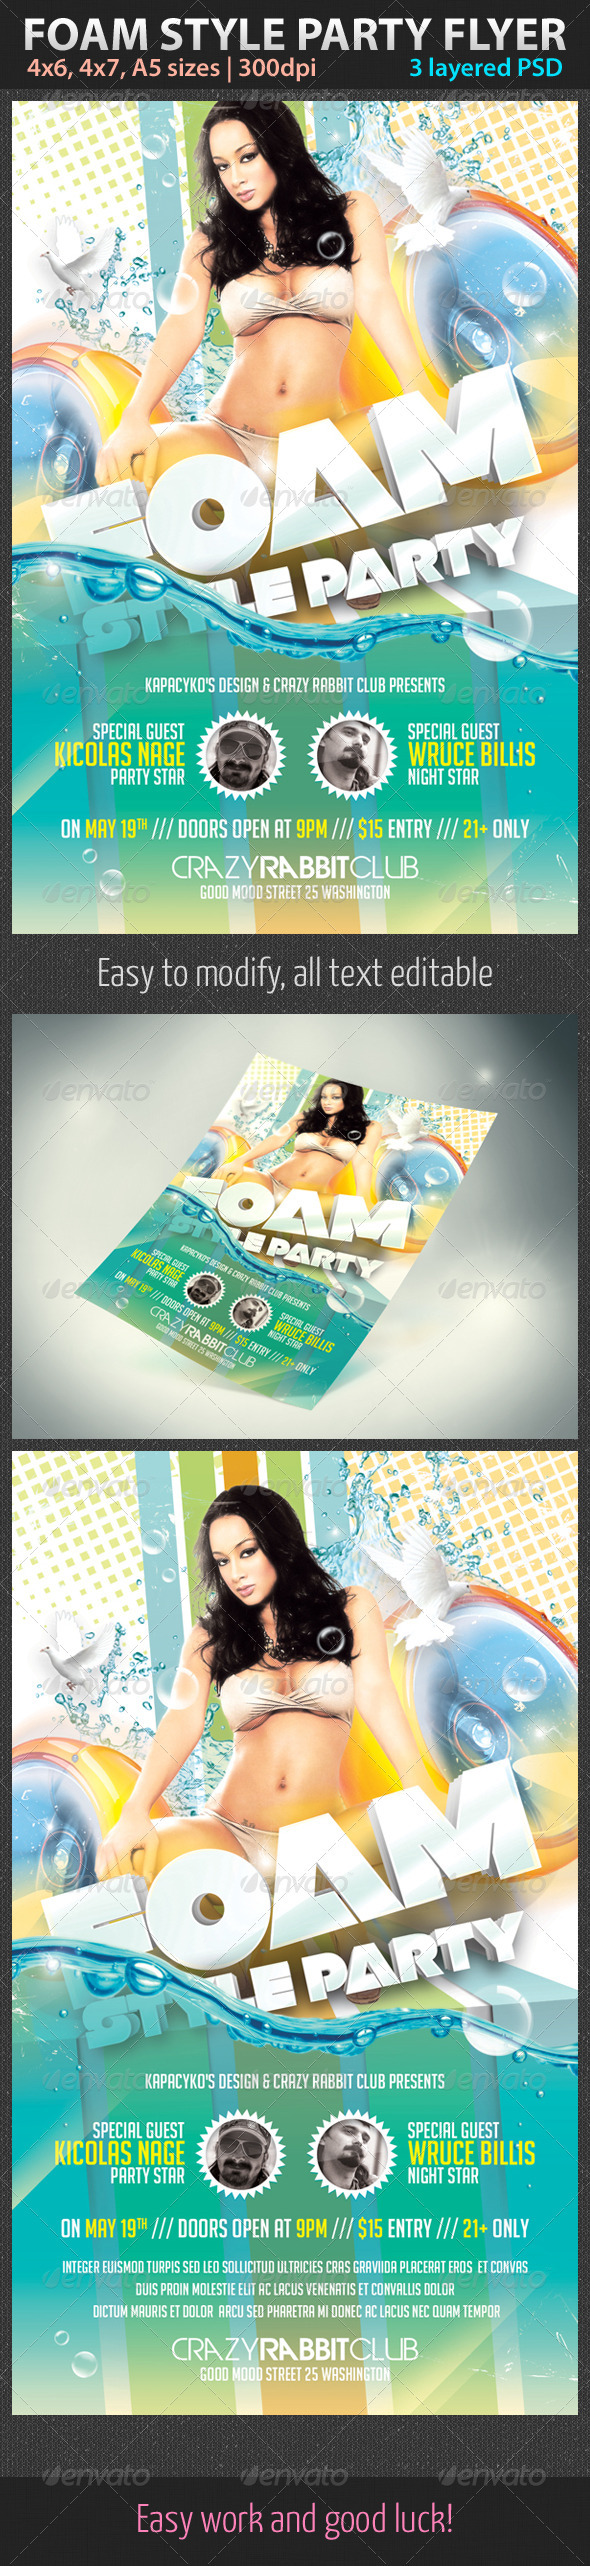 Foam Style Party Flyer - Clubs & Parties Events